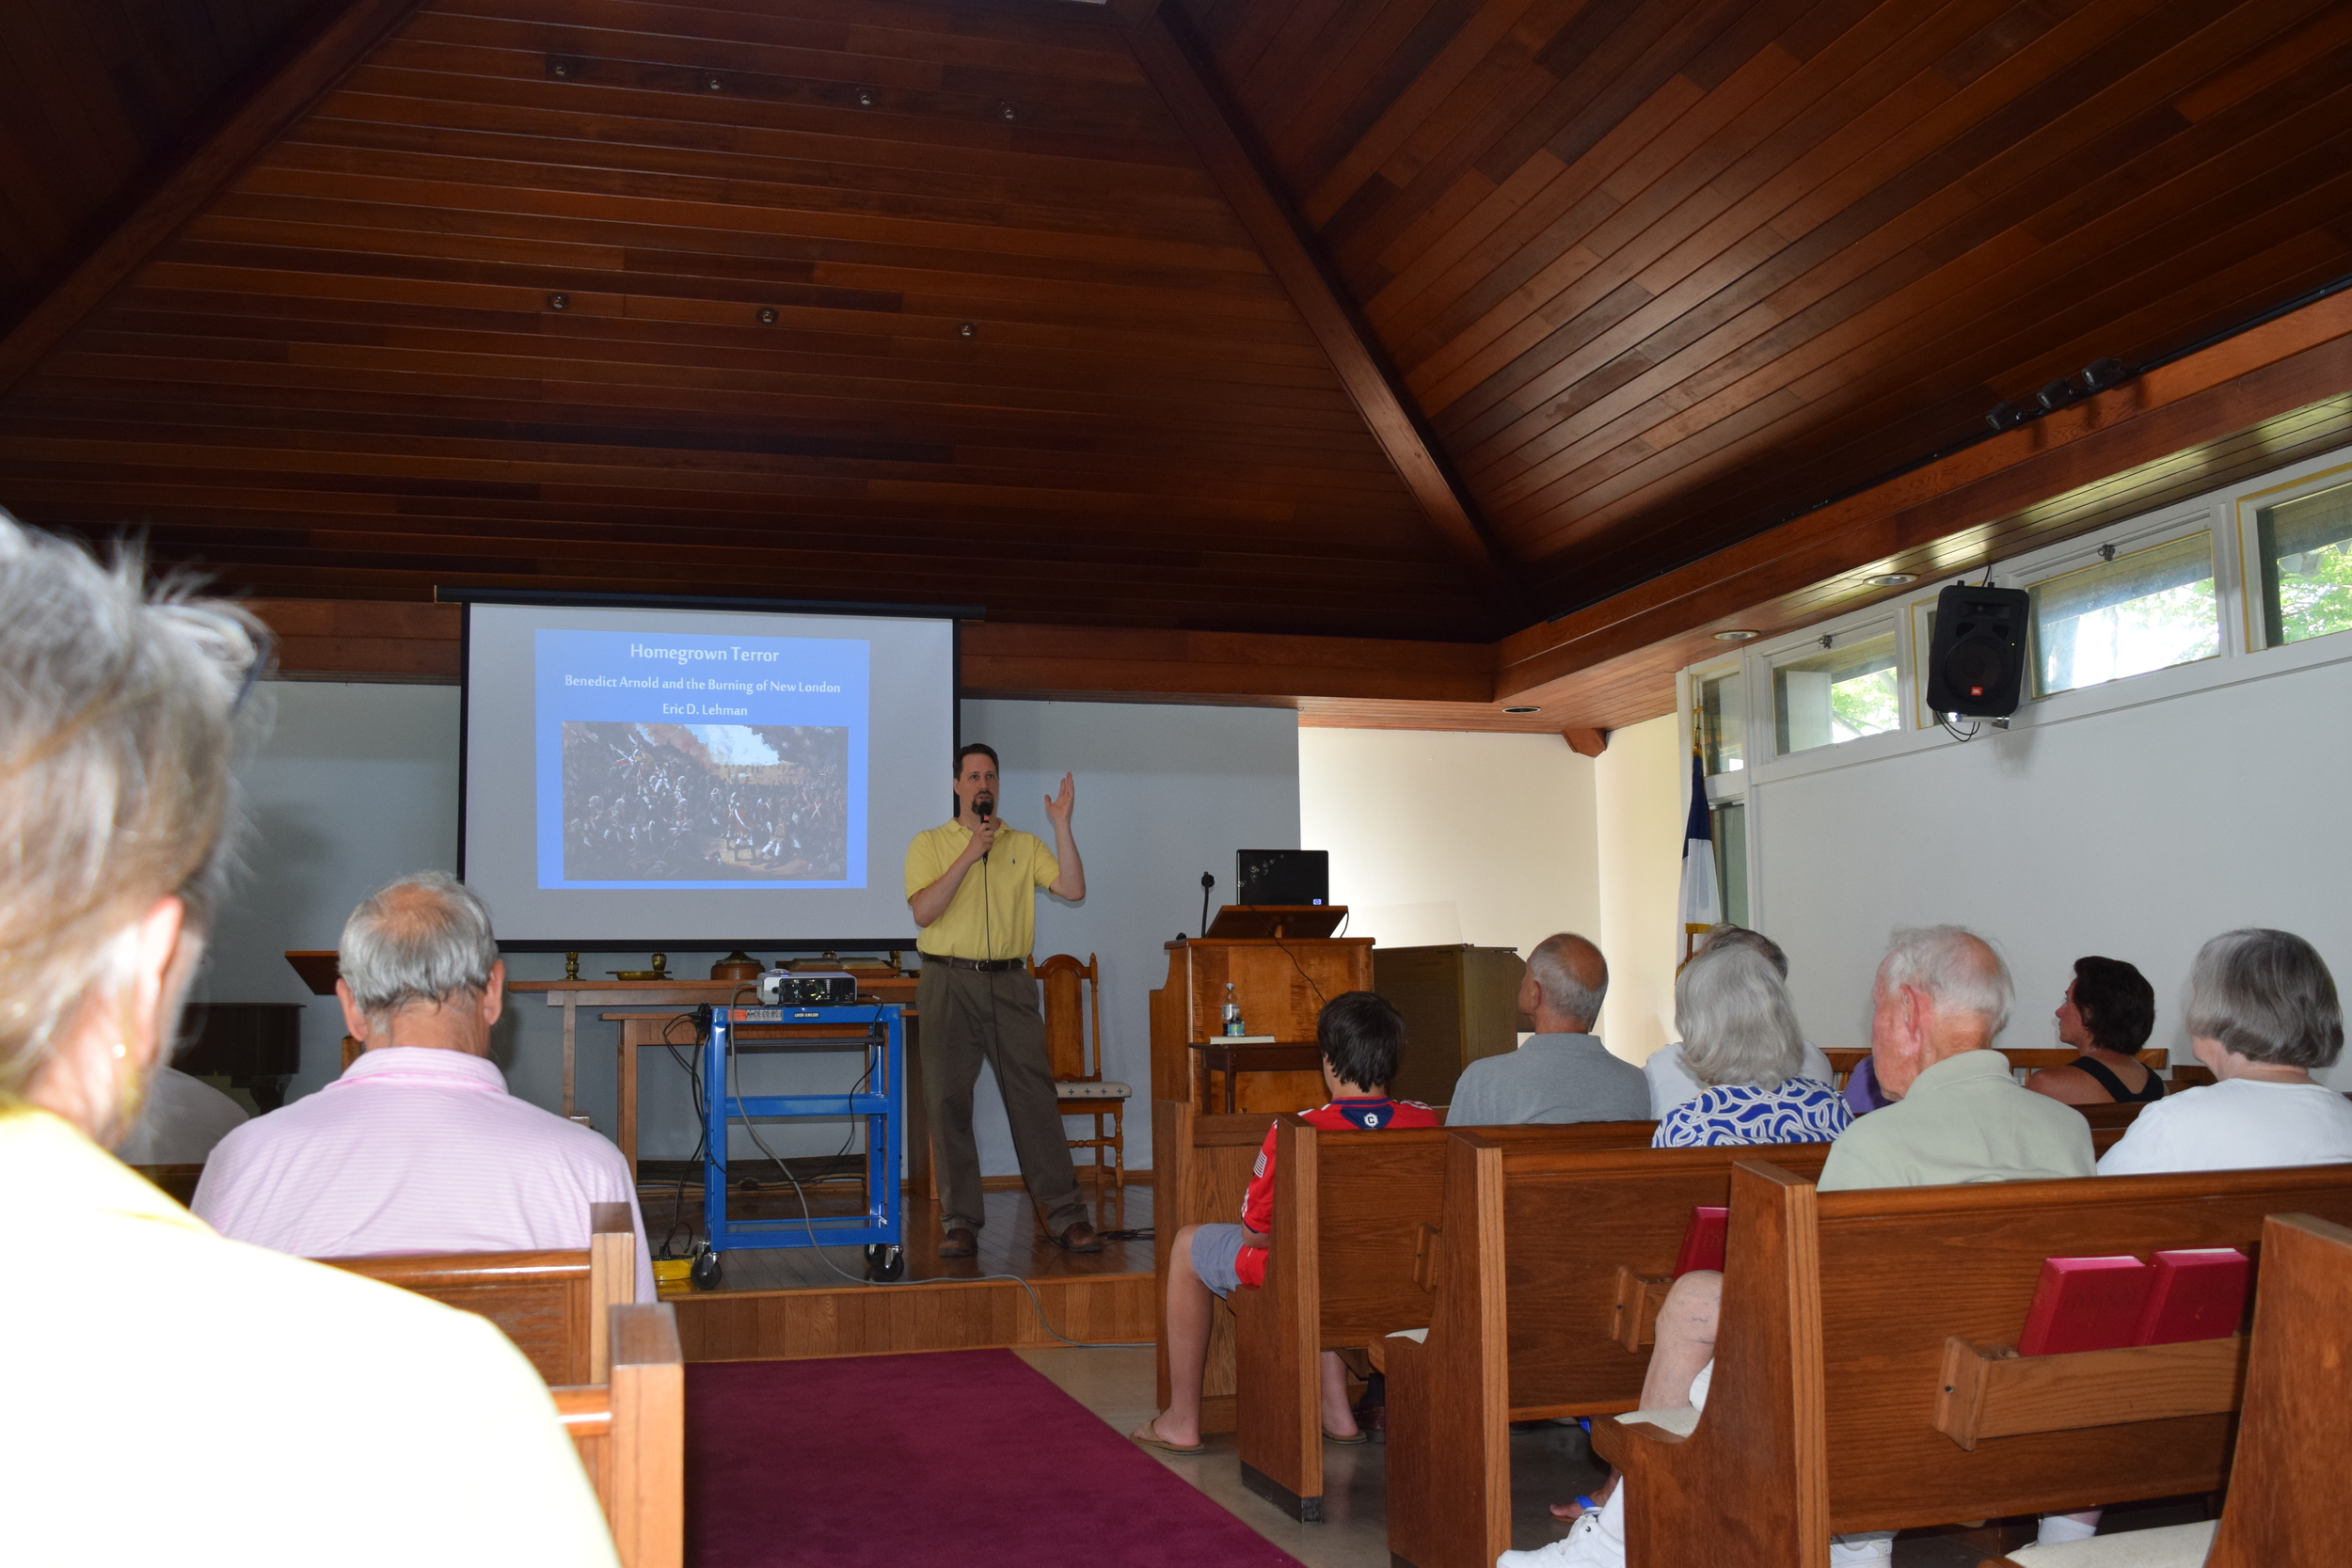 Eric giving a presentation at the church on Fisher's Island for the Henry Ferguson museum.